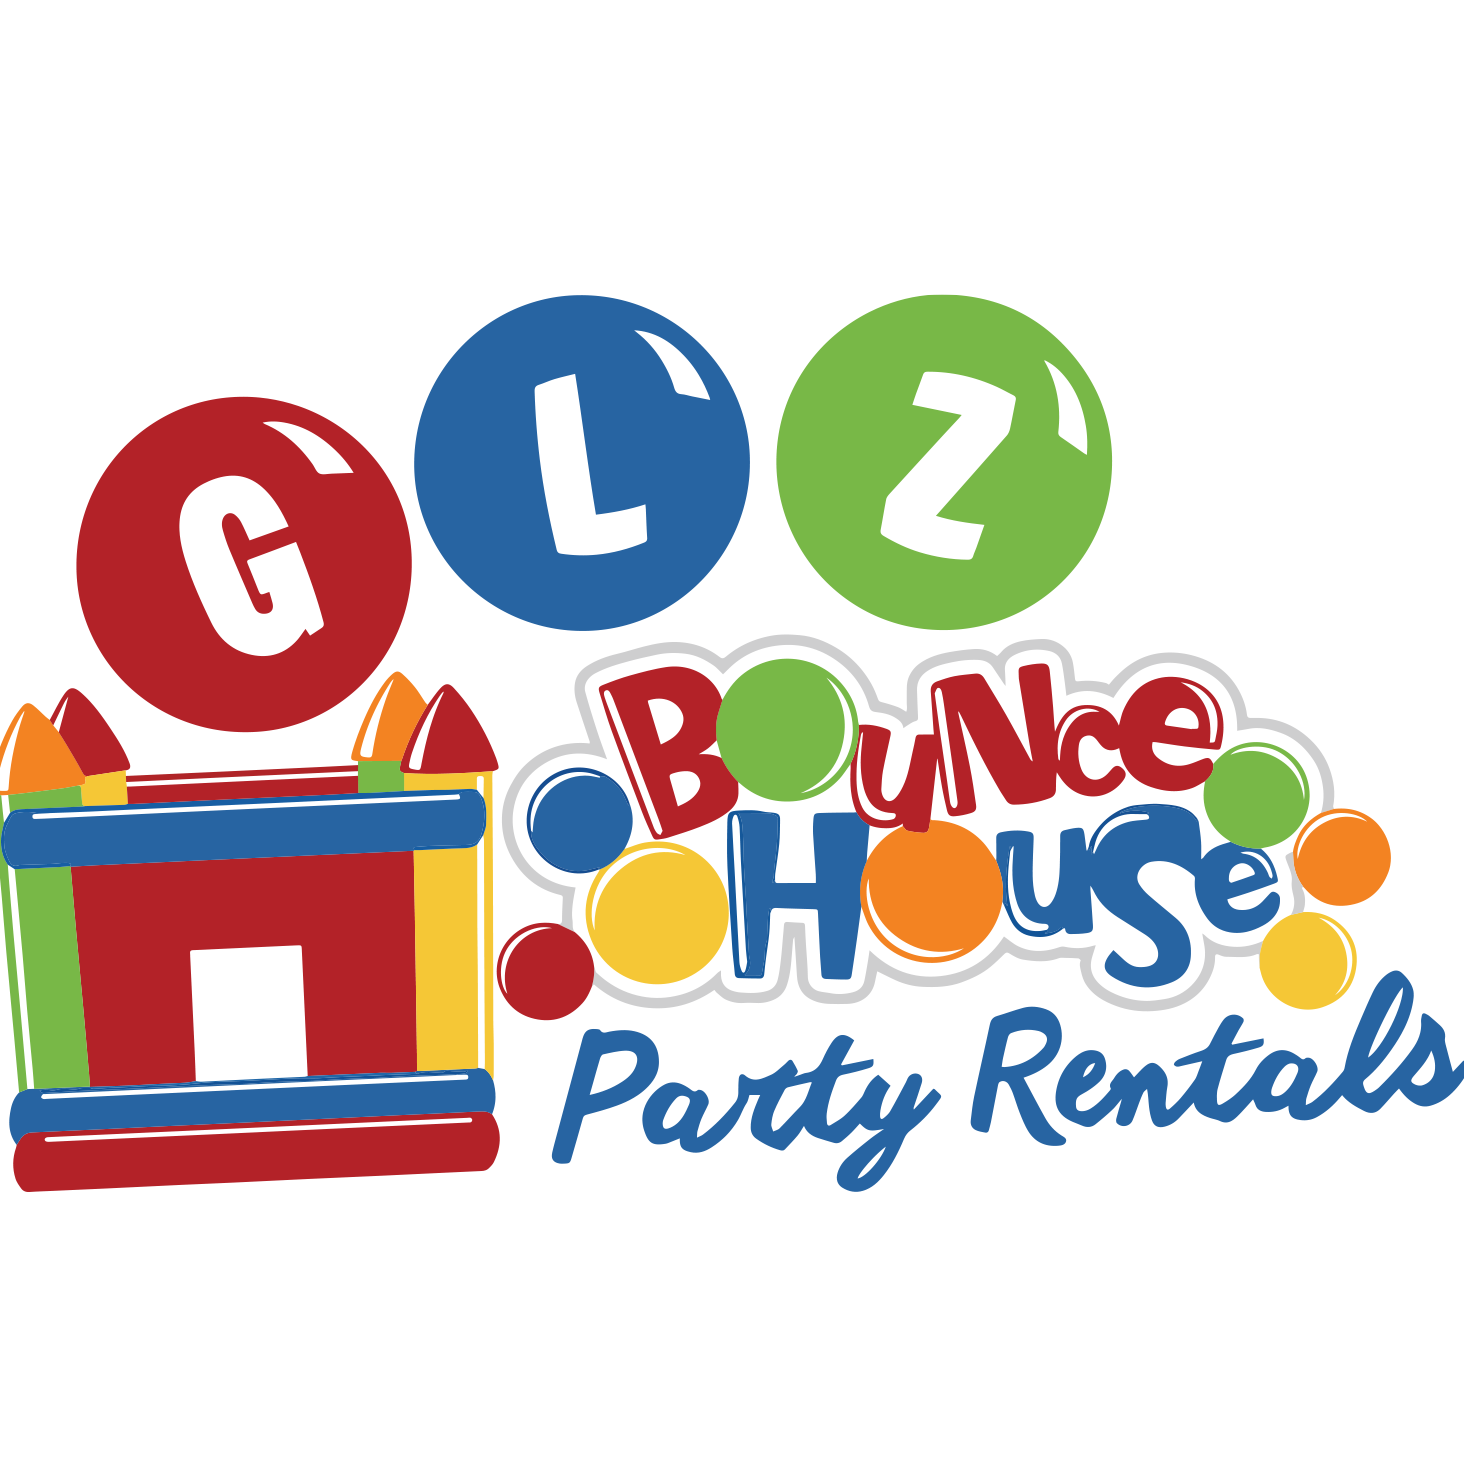 GLZ Bounce House and Party Rentals